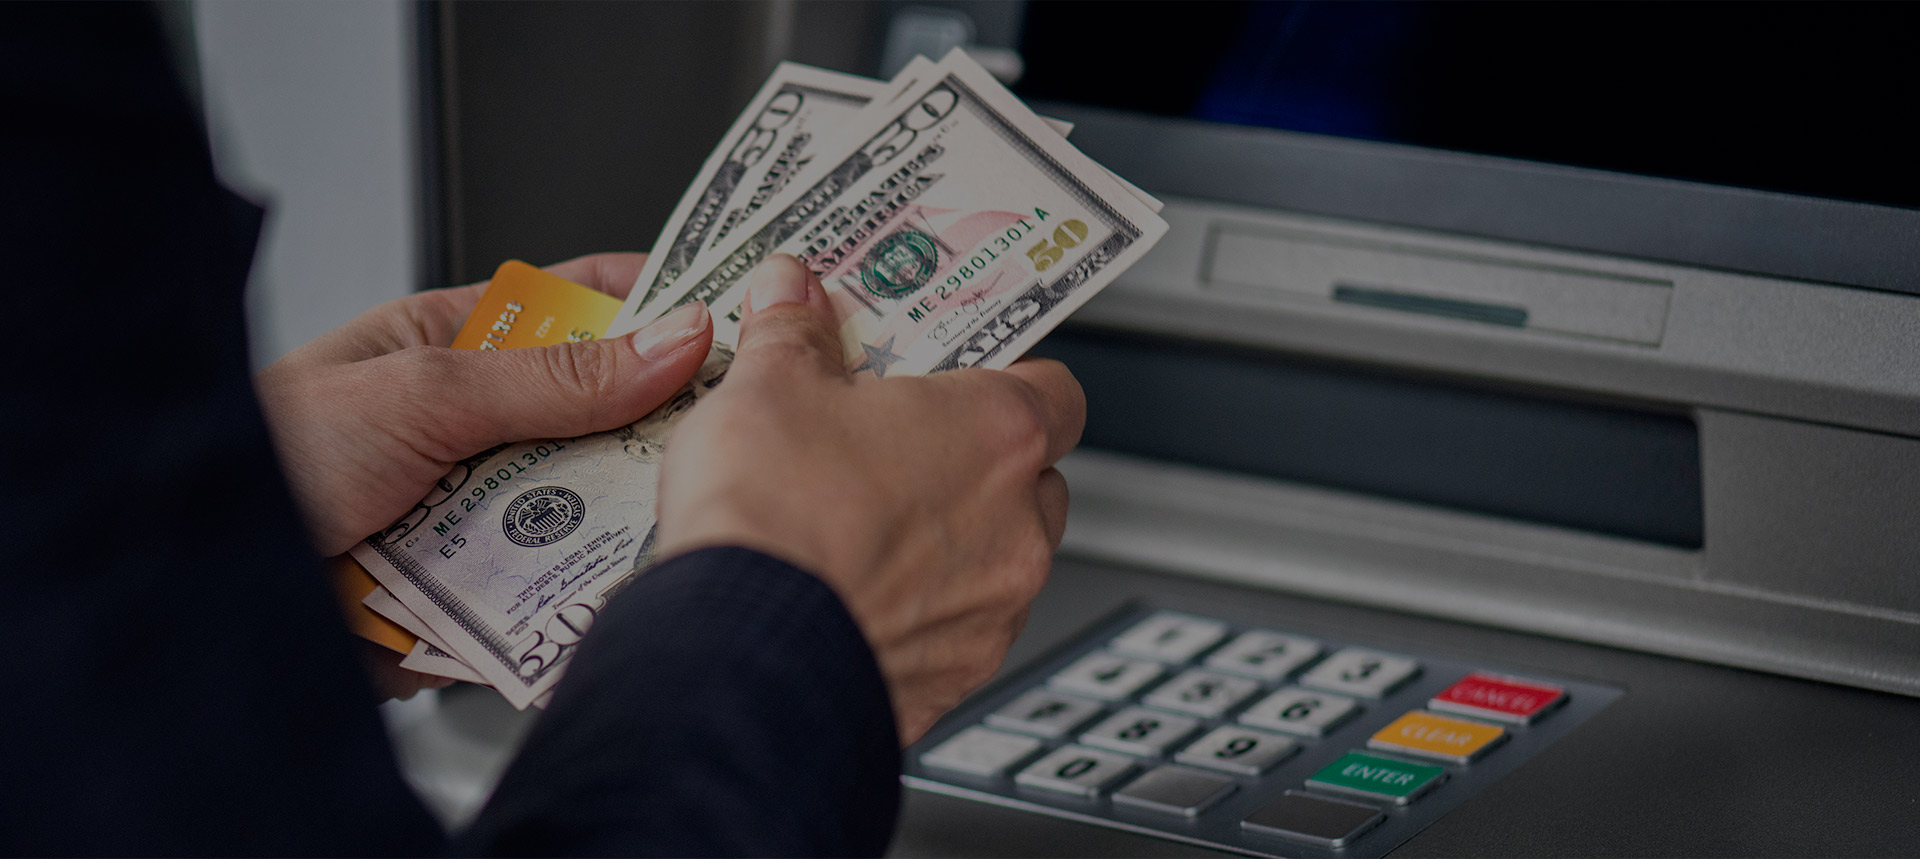 What to Do When Cash from ATMs Isn't Enough